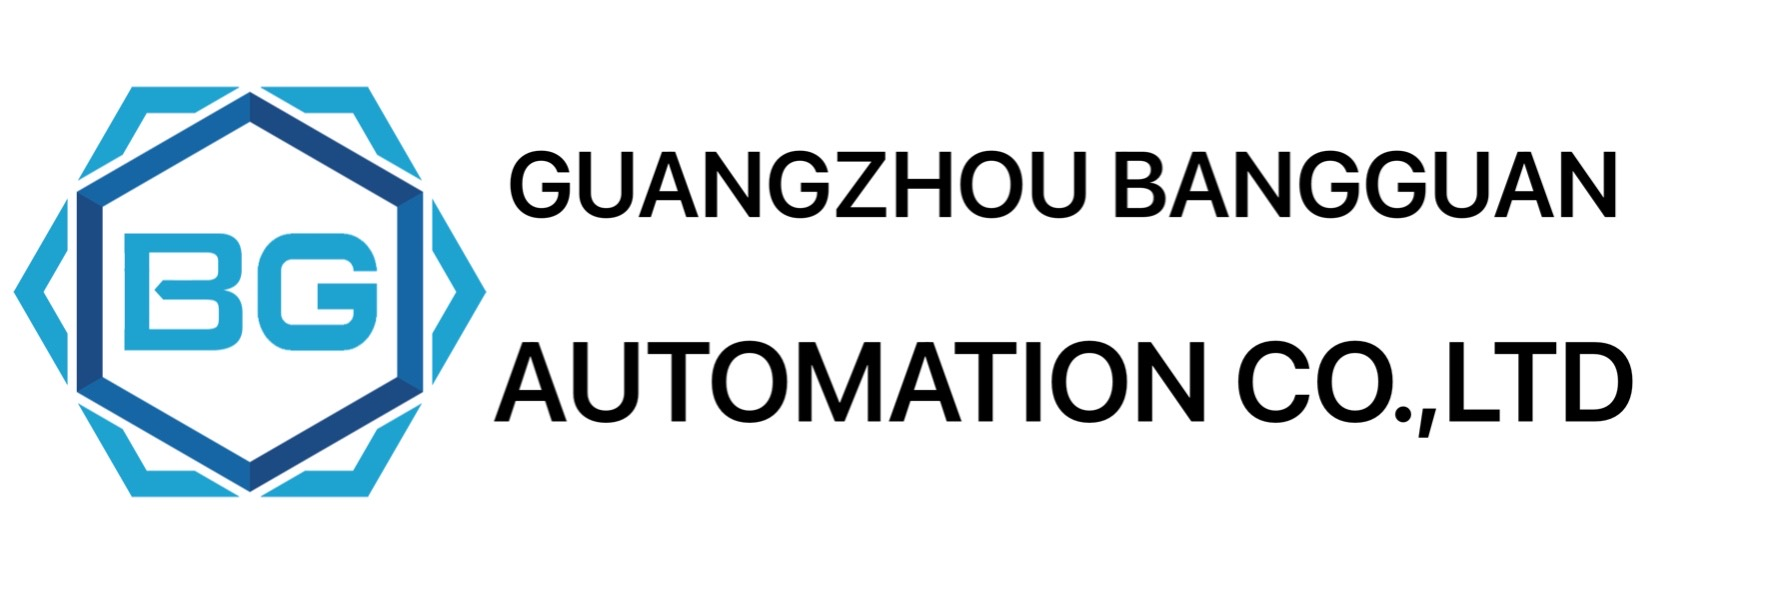 Our Factory - GuangZhou BangGuan Automation Co., LTD